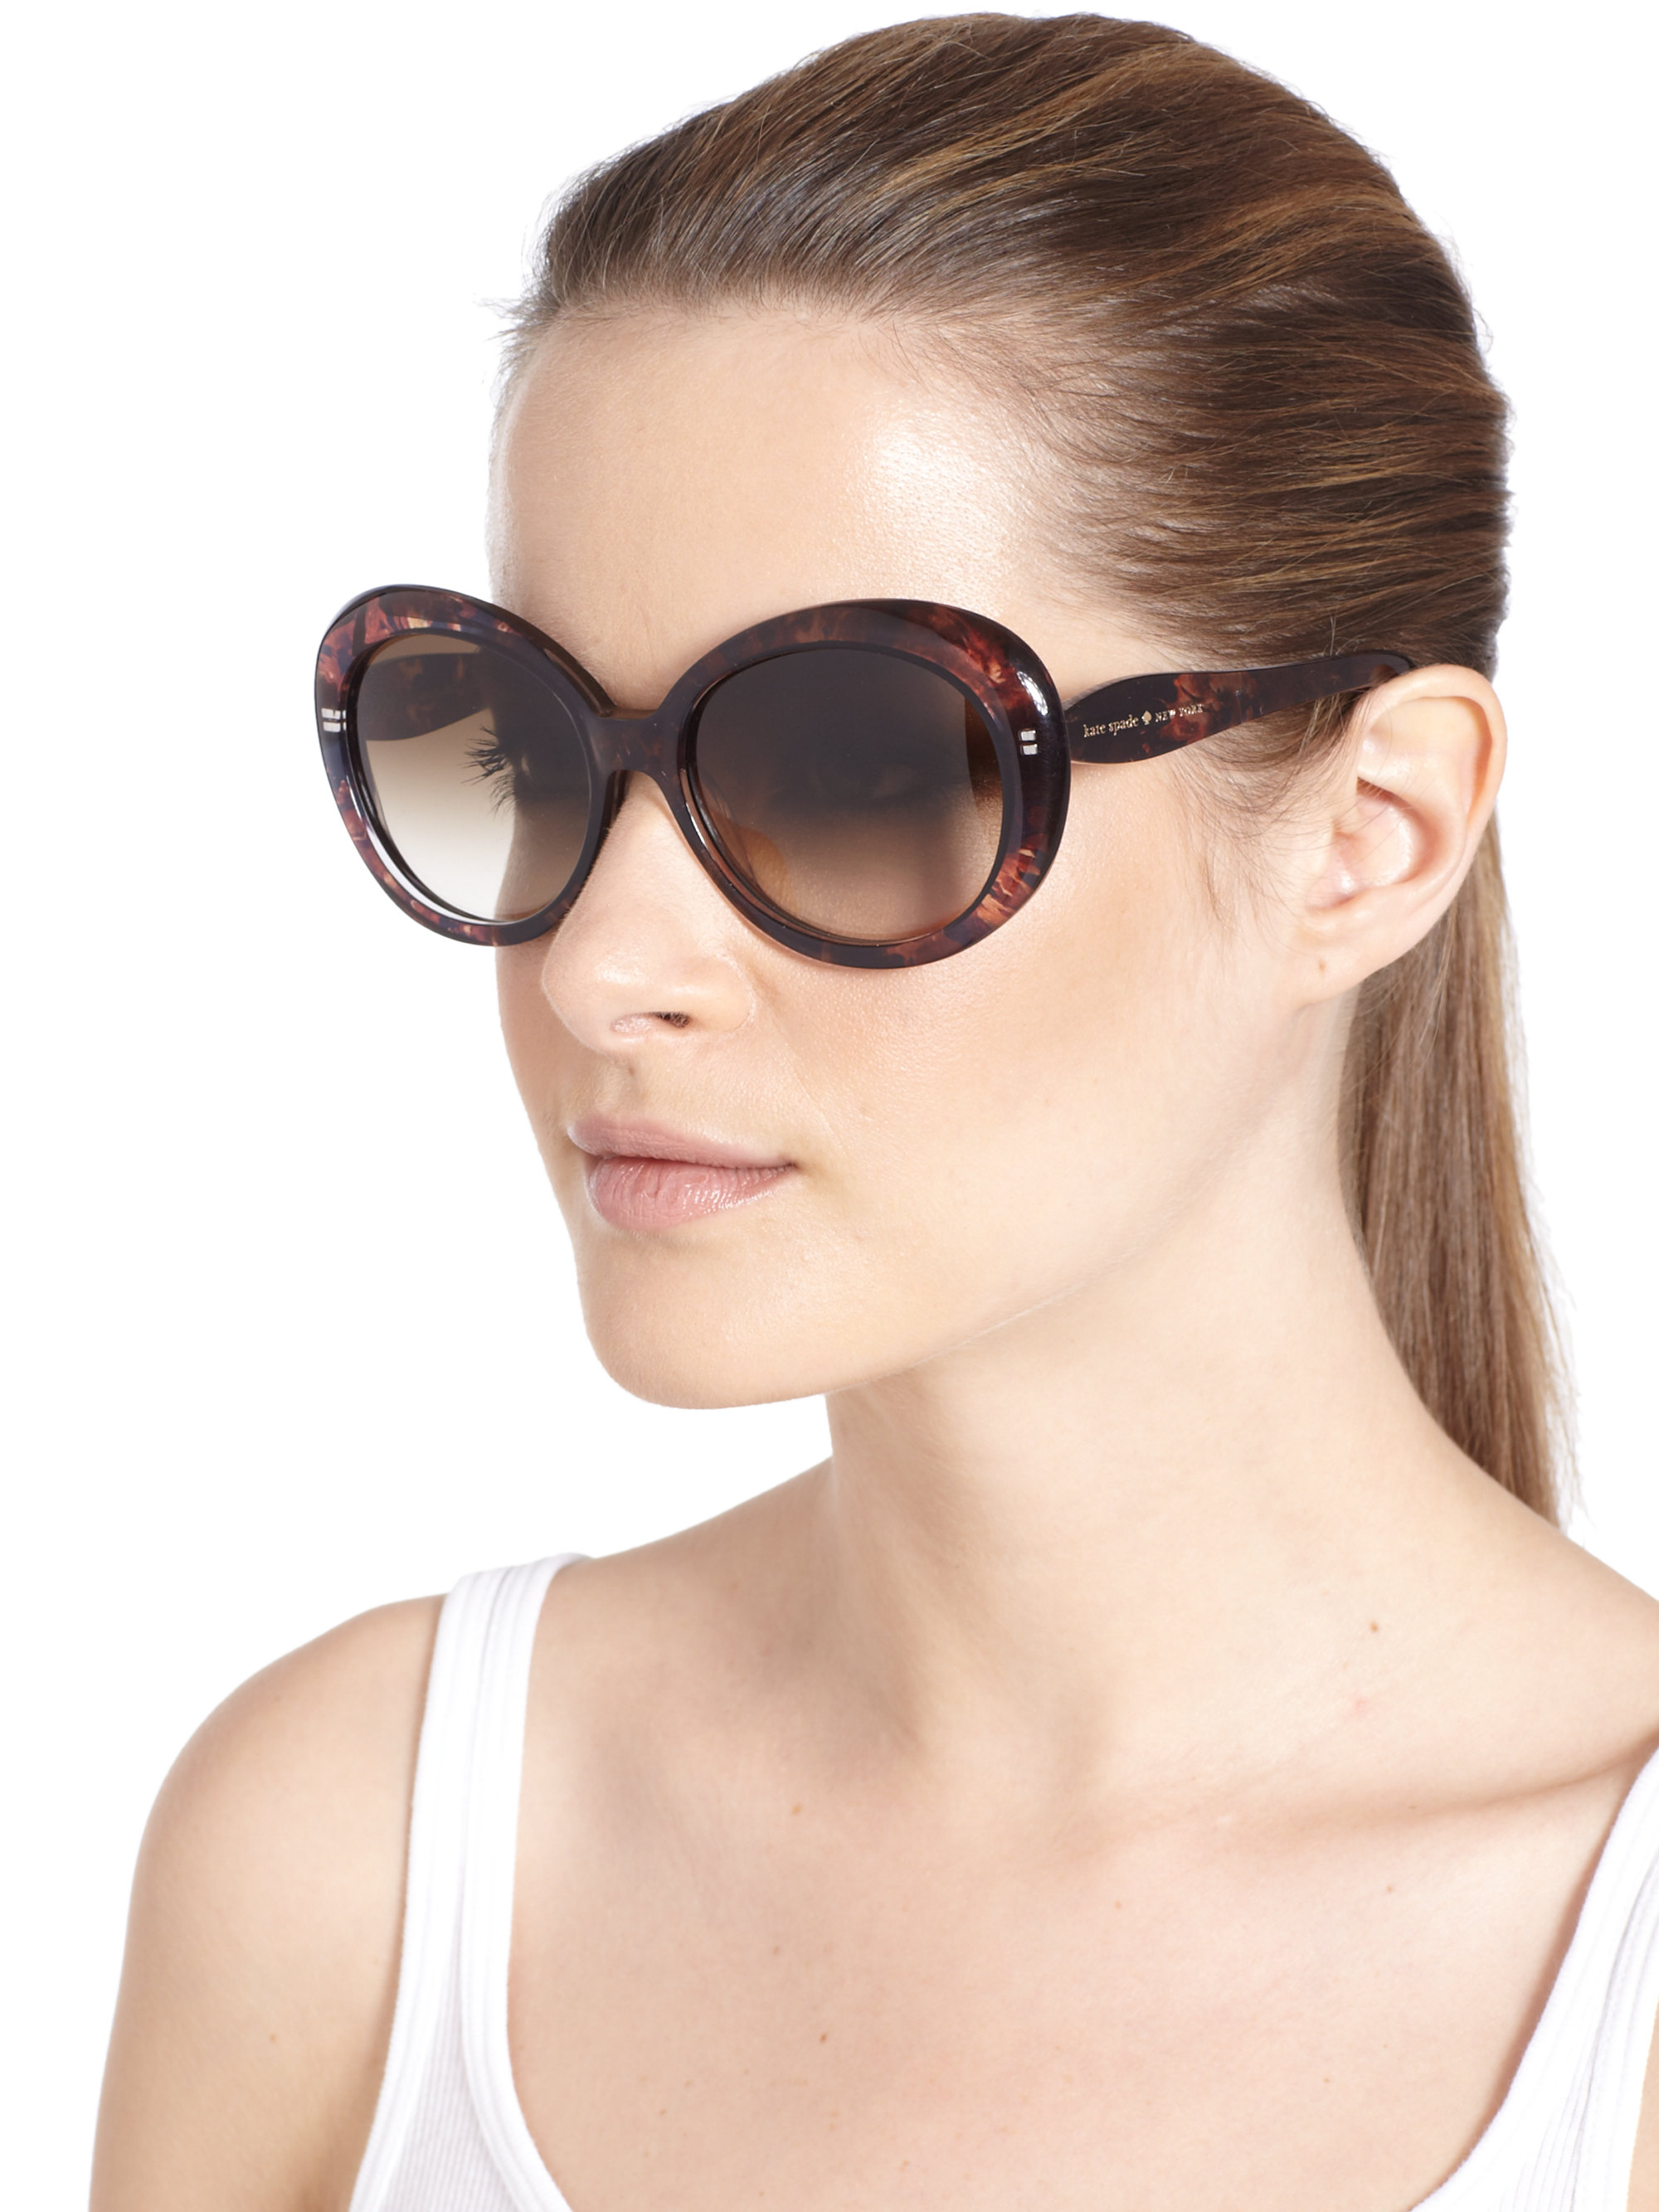 Kate Spade Oversized sunglasses m0vFxtX